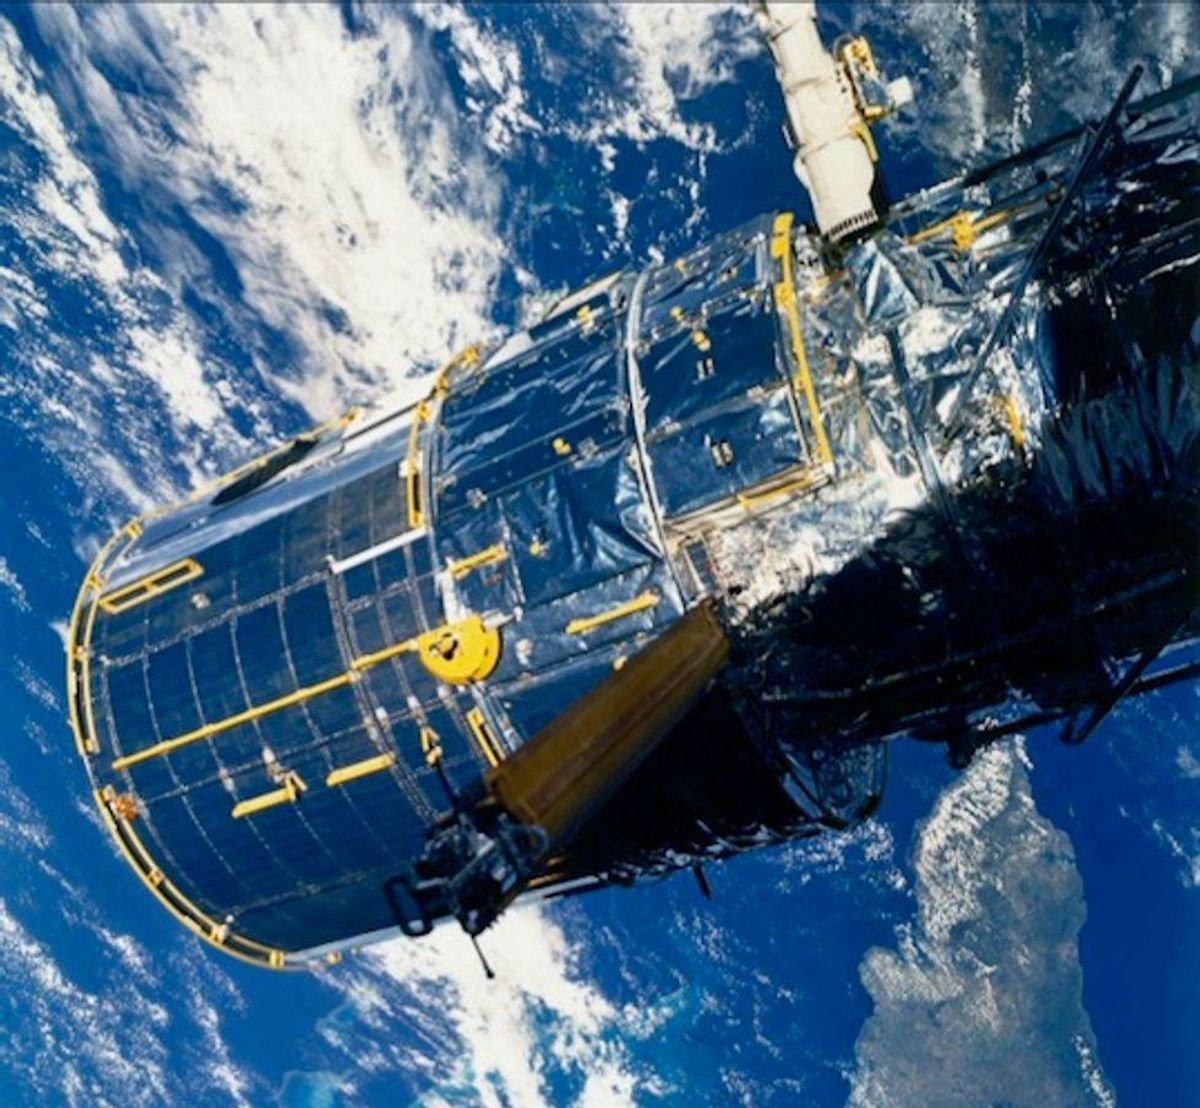 NASA reports trouble with Hubble Space Telescope